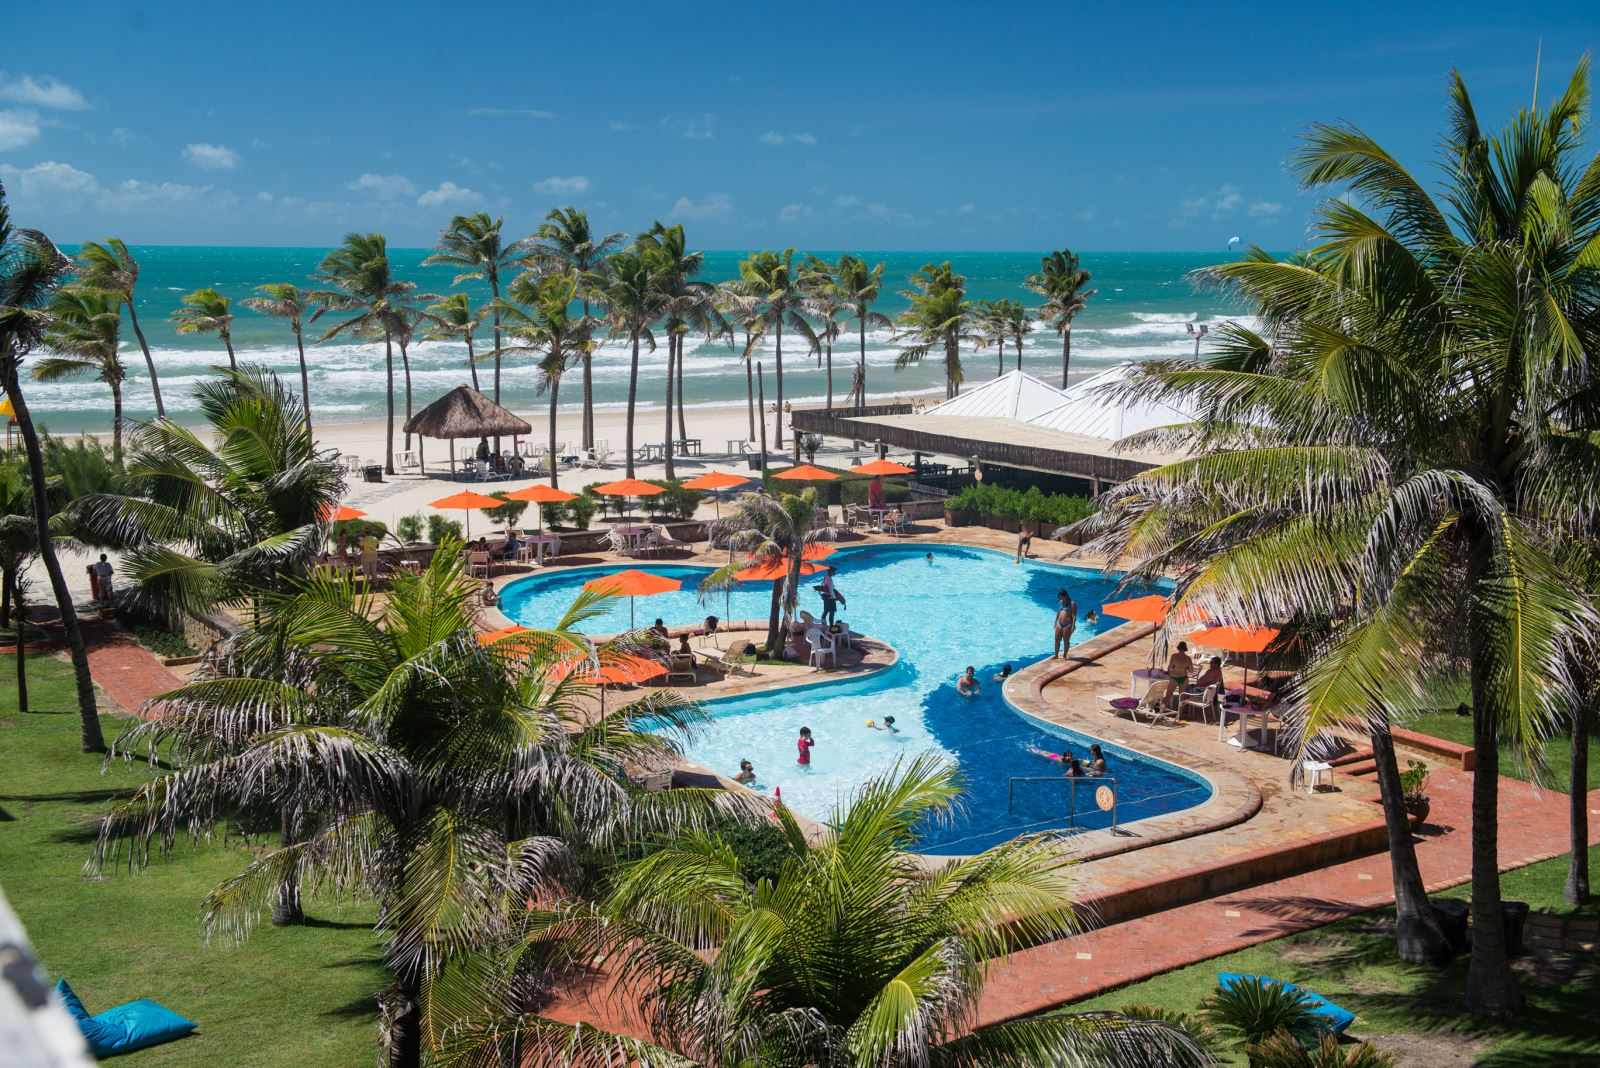 seaside park chat sites Chat live or call 1-800-454-3743 any time for help booking your hotels in seaside park our team of experts can help you pinpoint seaside park hotels options suited to your tastes and budget forget orbitz change or cancel fees on seaside park hotels.